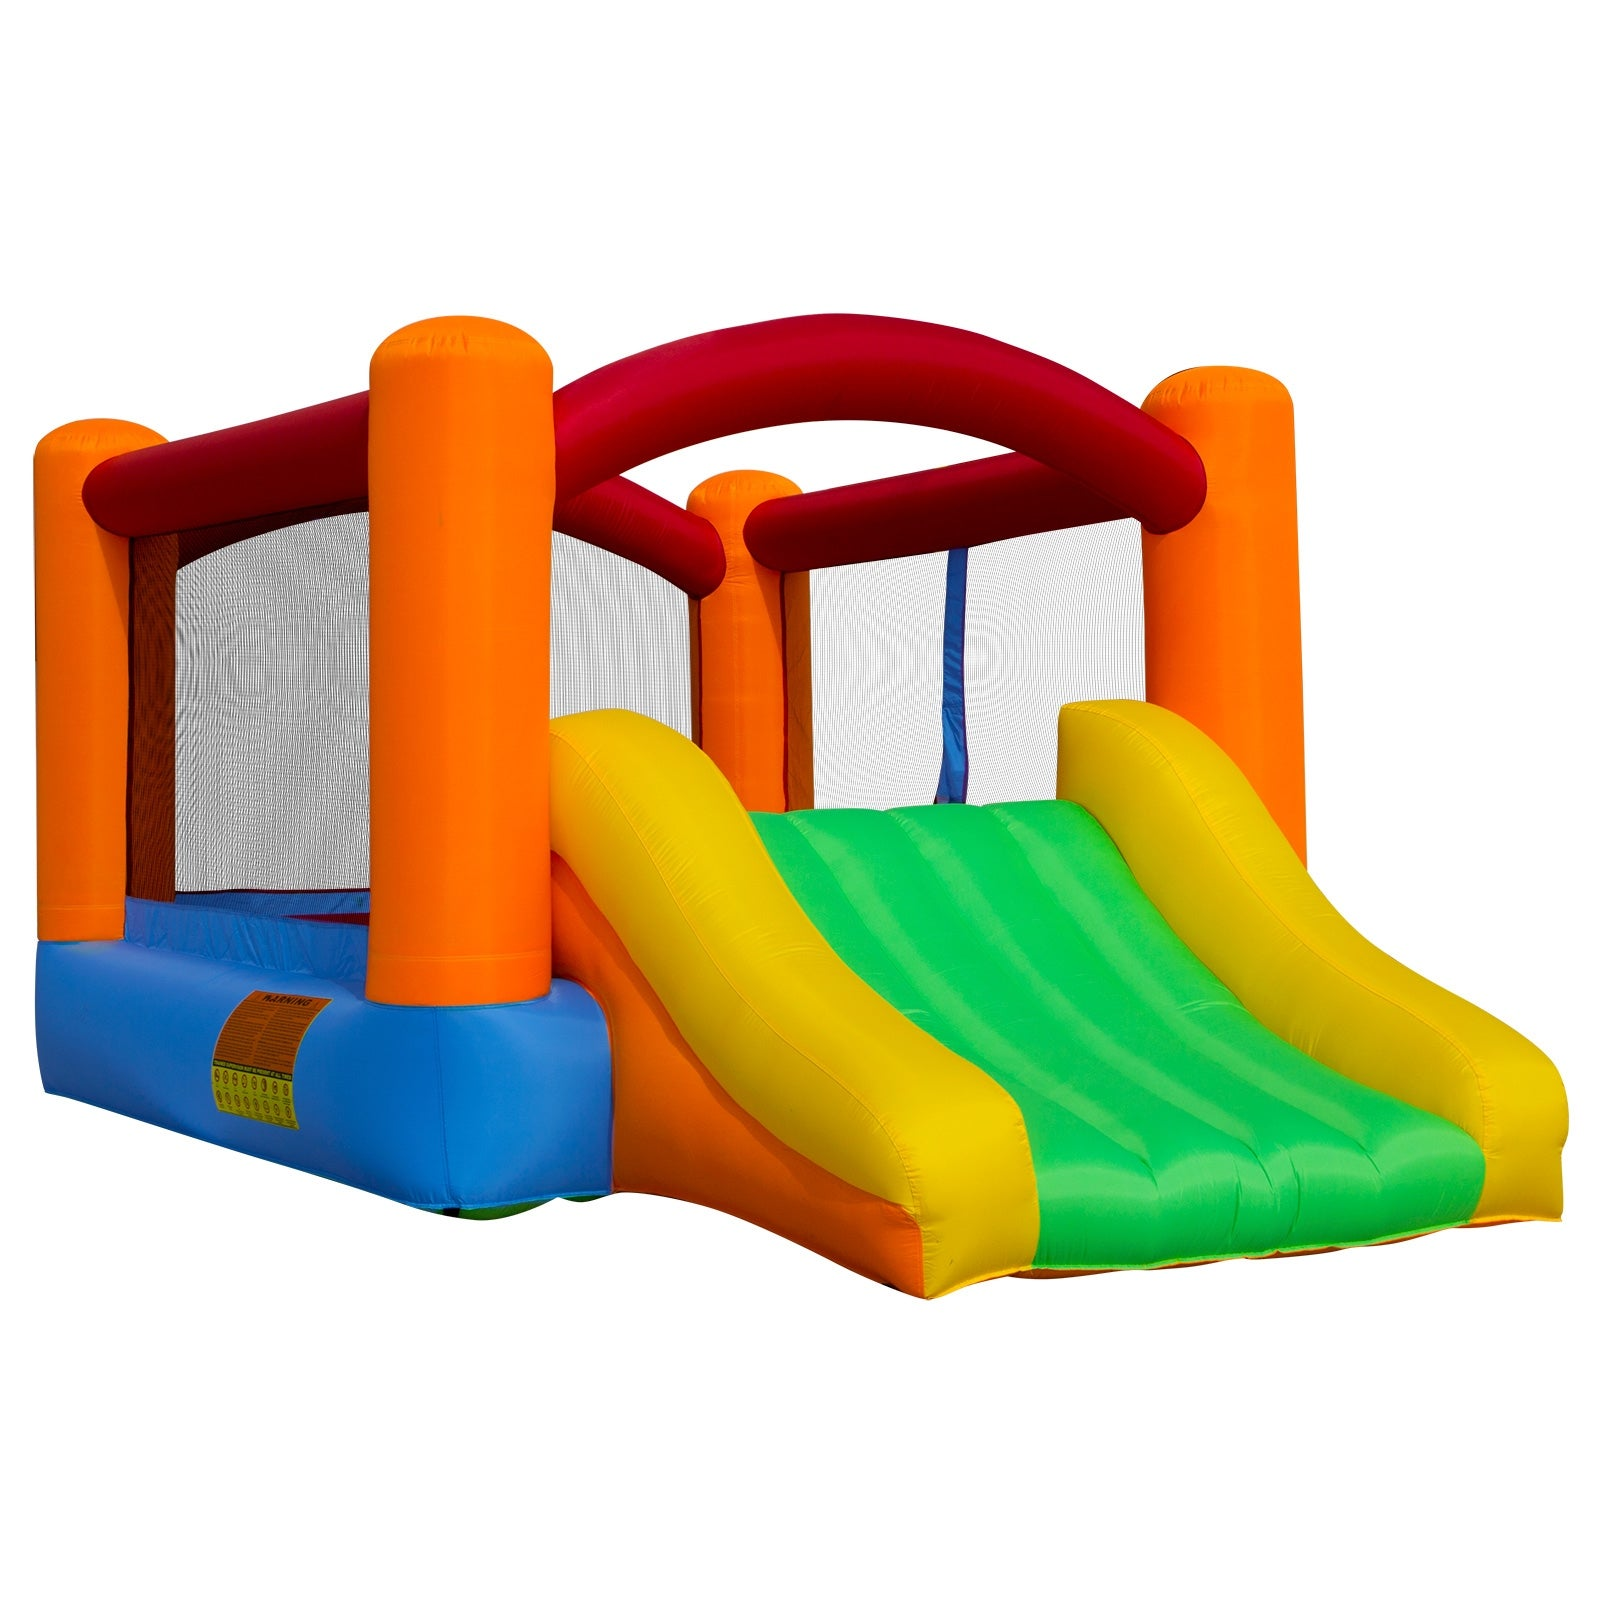 Enjoyable Cloud 9 Bounce House With Slide With Blower Interior Design Ideas Gentotryabchikinfo